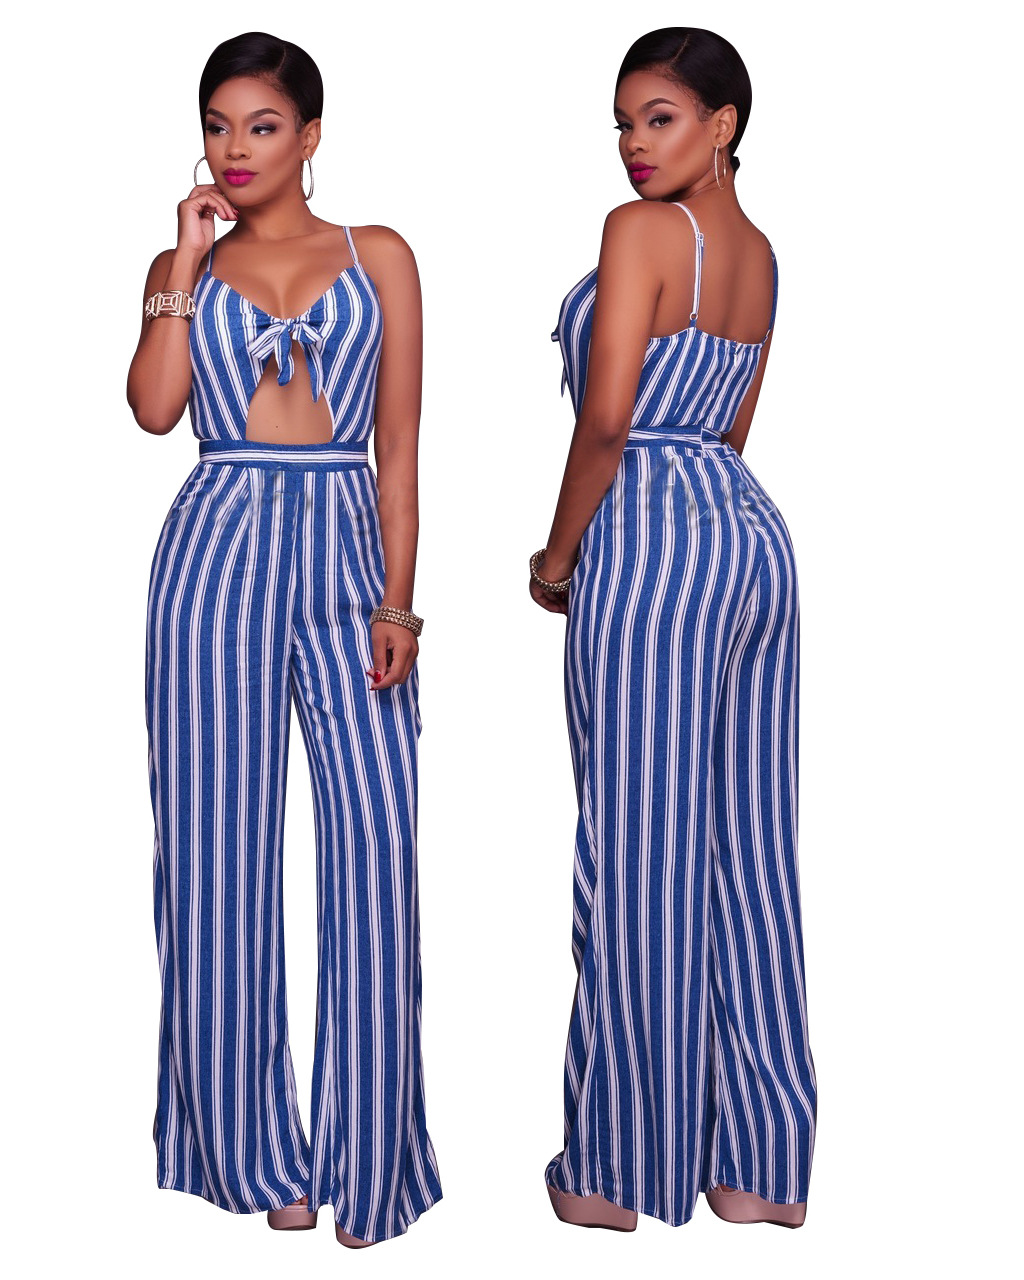 b515e0bf5bcc US$ 8.72 - Front-tied Blue Vertical Stripe Strappy Jumpsuit 25491-1 -  www.global-lover.com